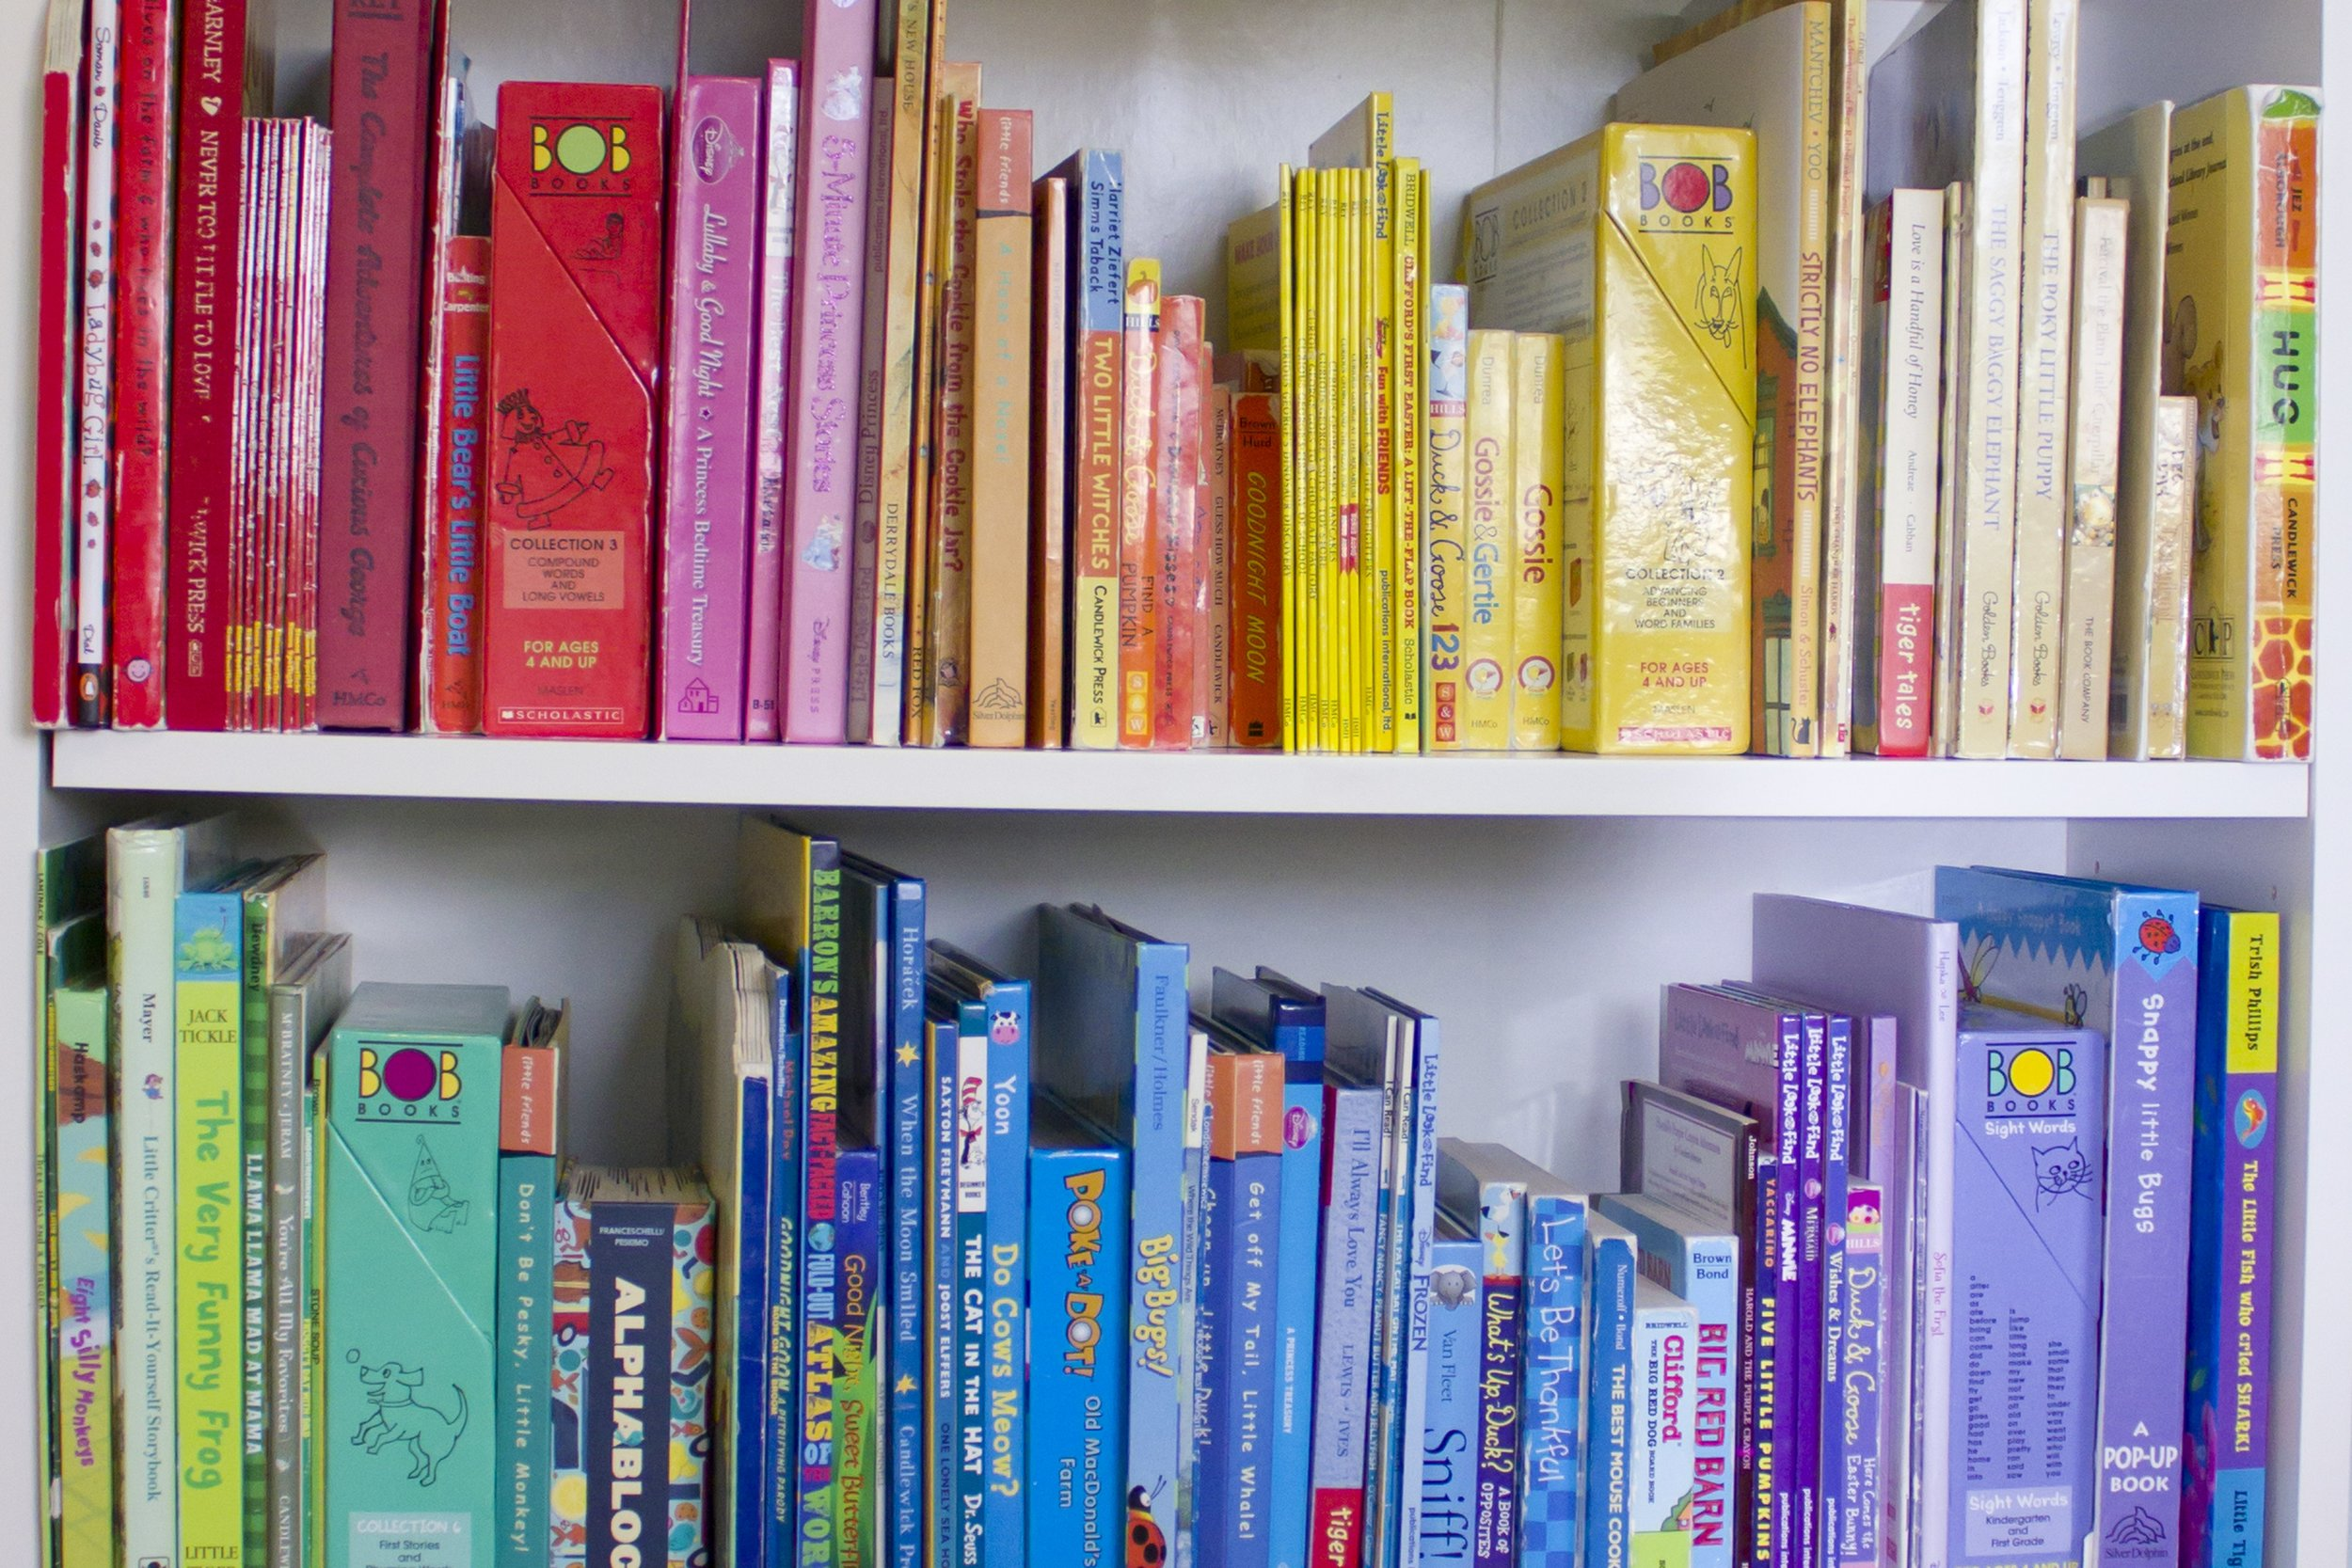 books ordered by colors of the rainbow on a white bookshelf with a close-up